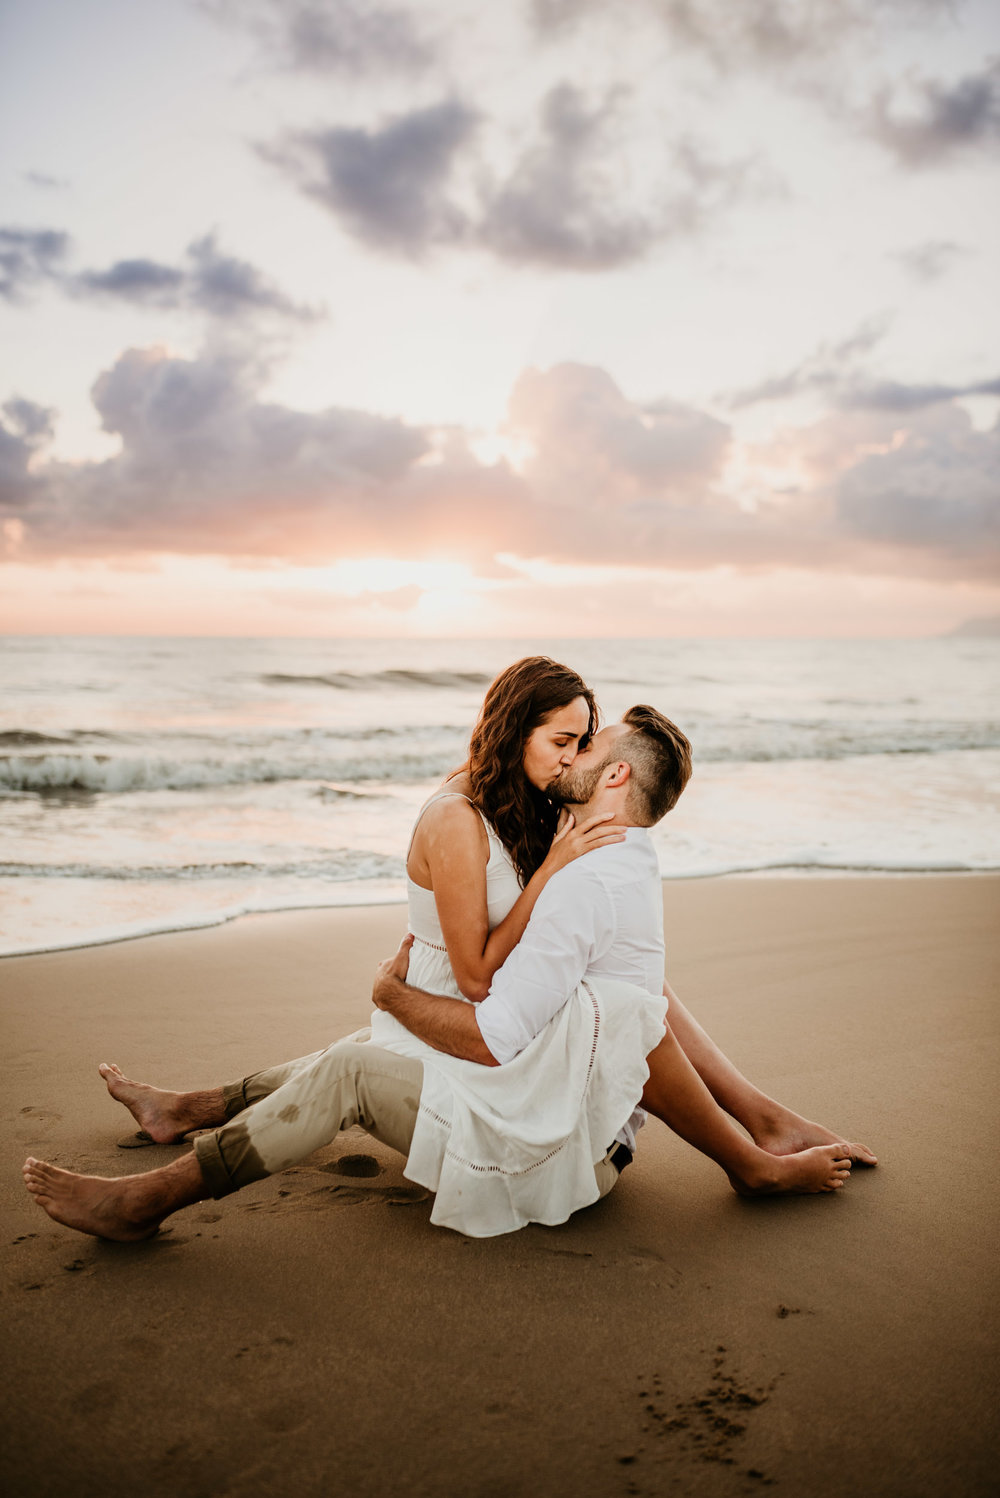 The Raw Photographer - Cairns Wedding Photographer - Engaged Engagement - Beach location - Candid Photography Queensland-14.jpg